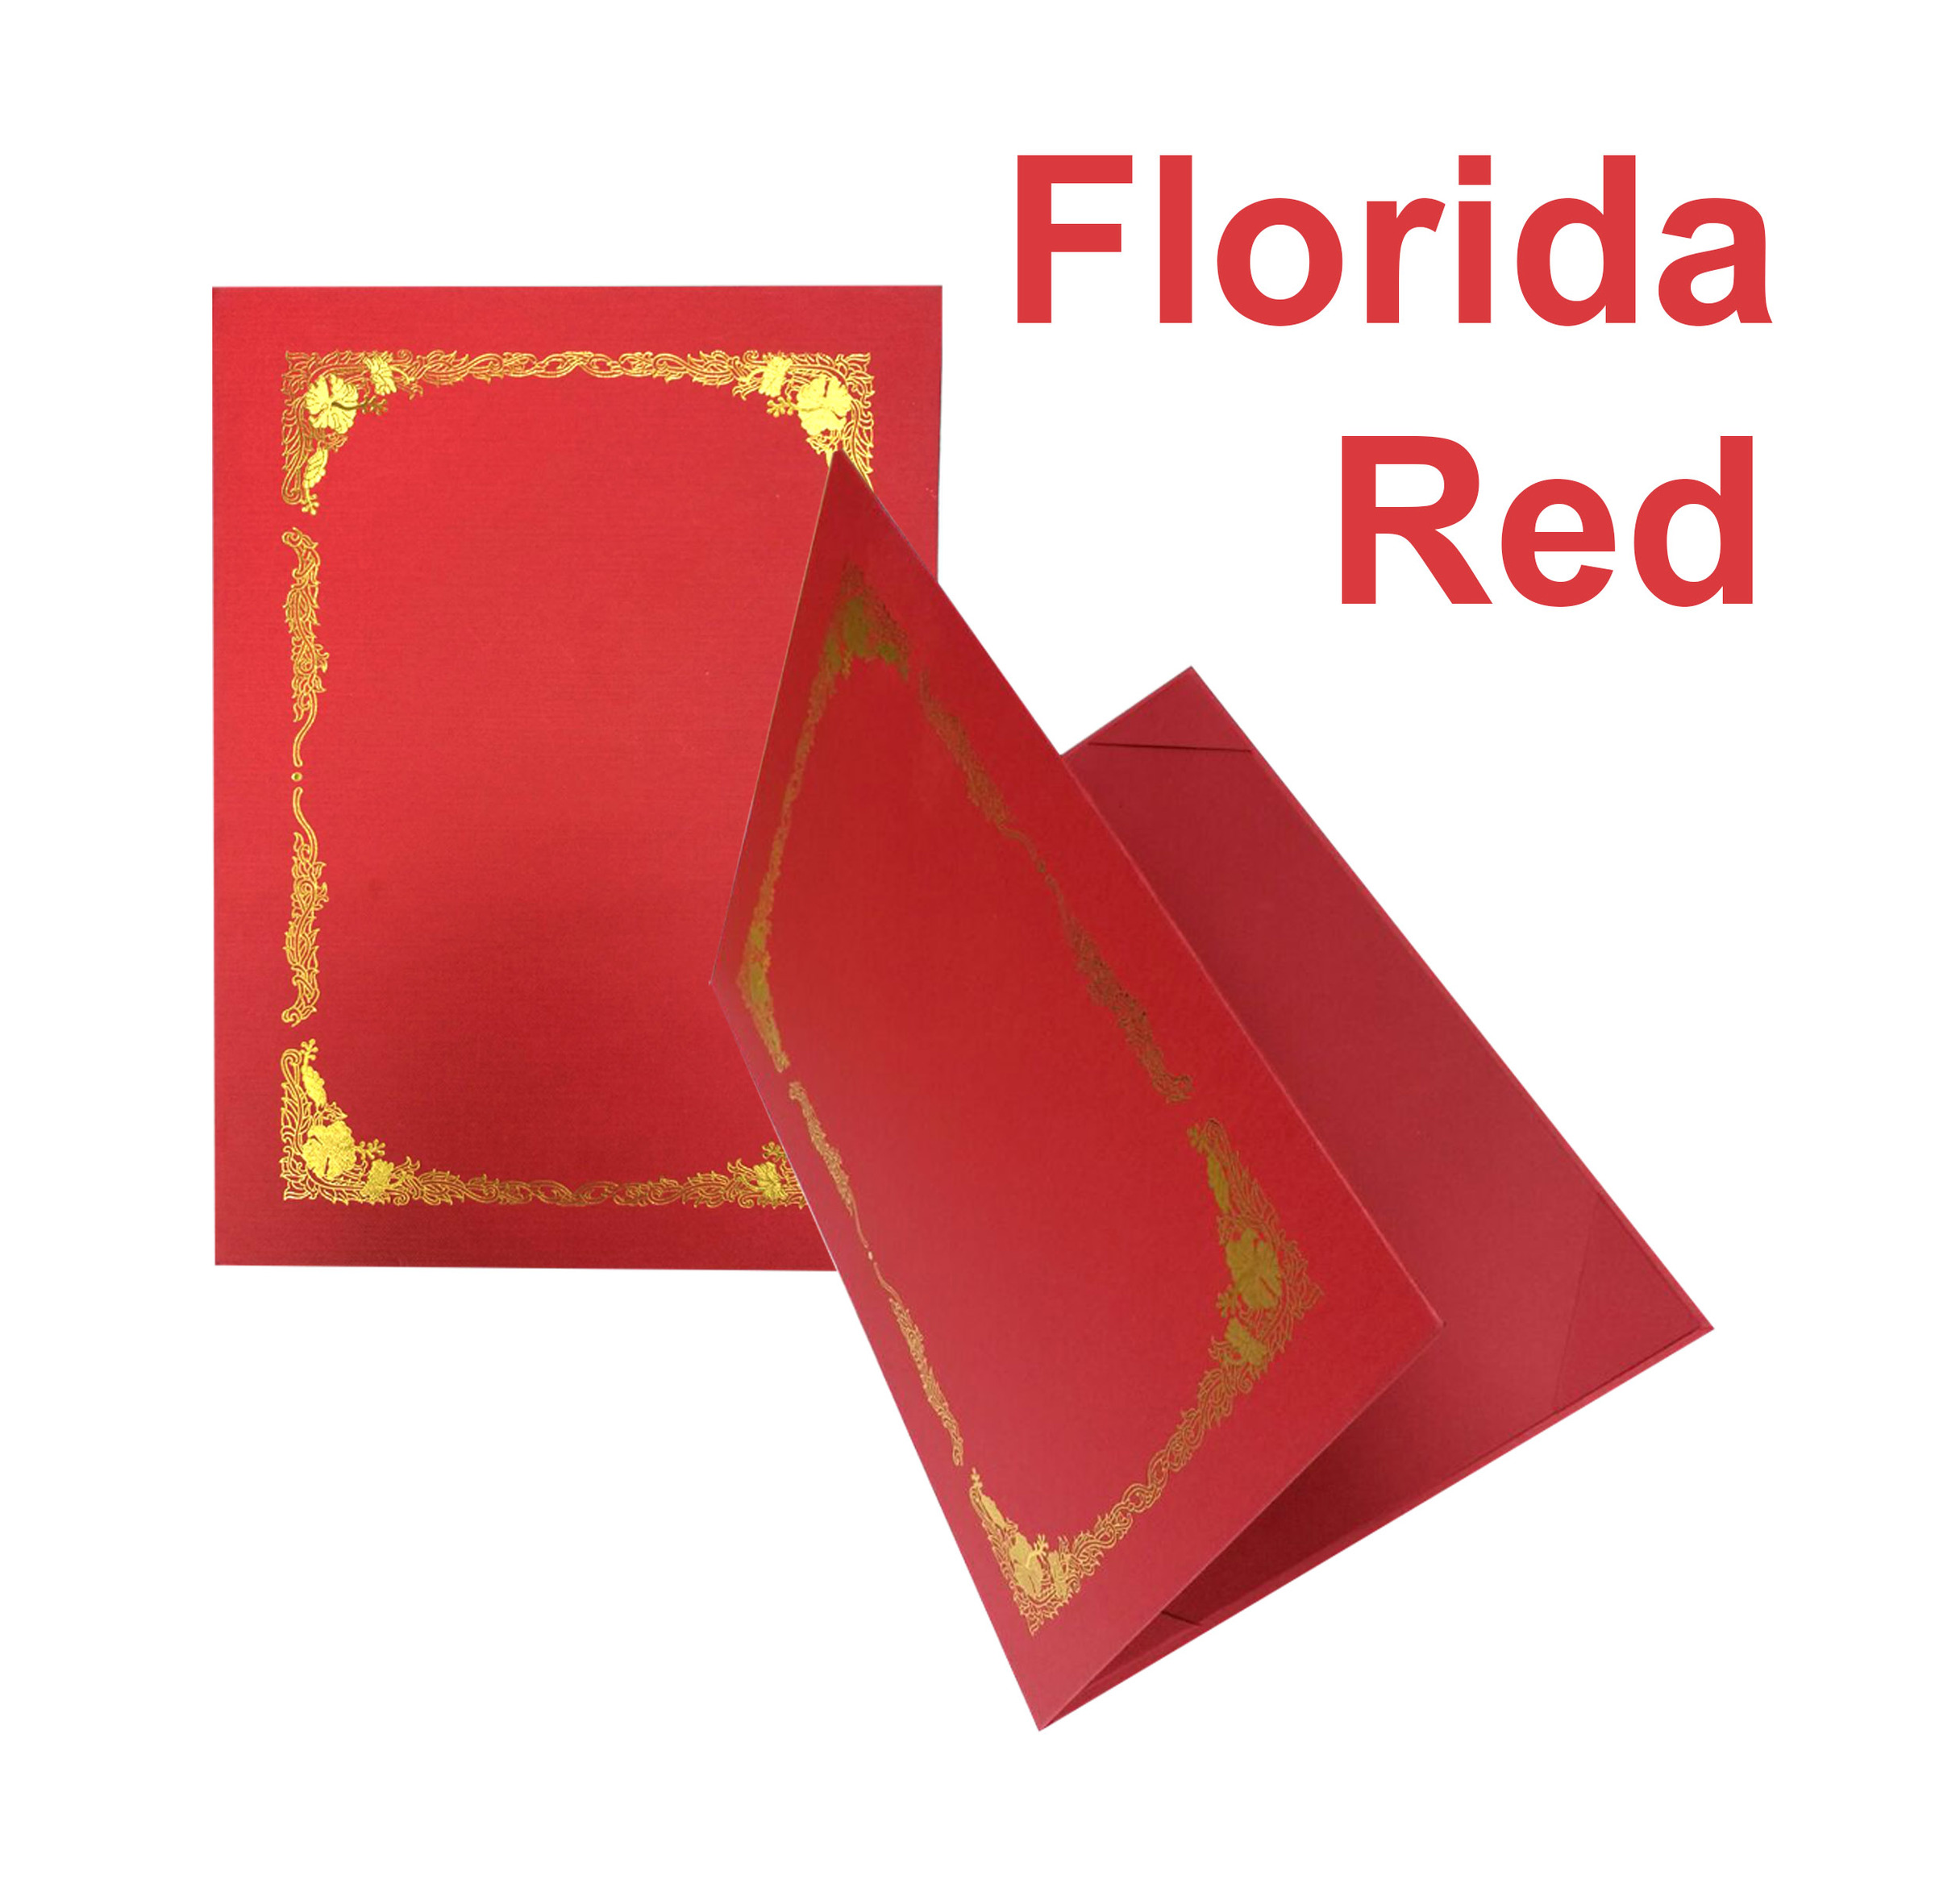 cert folder royal blue florida.jpg